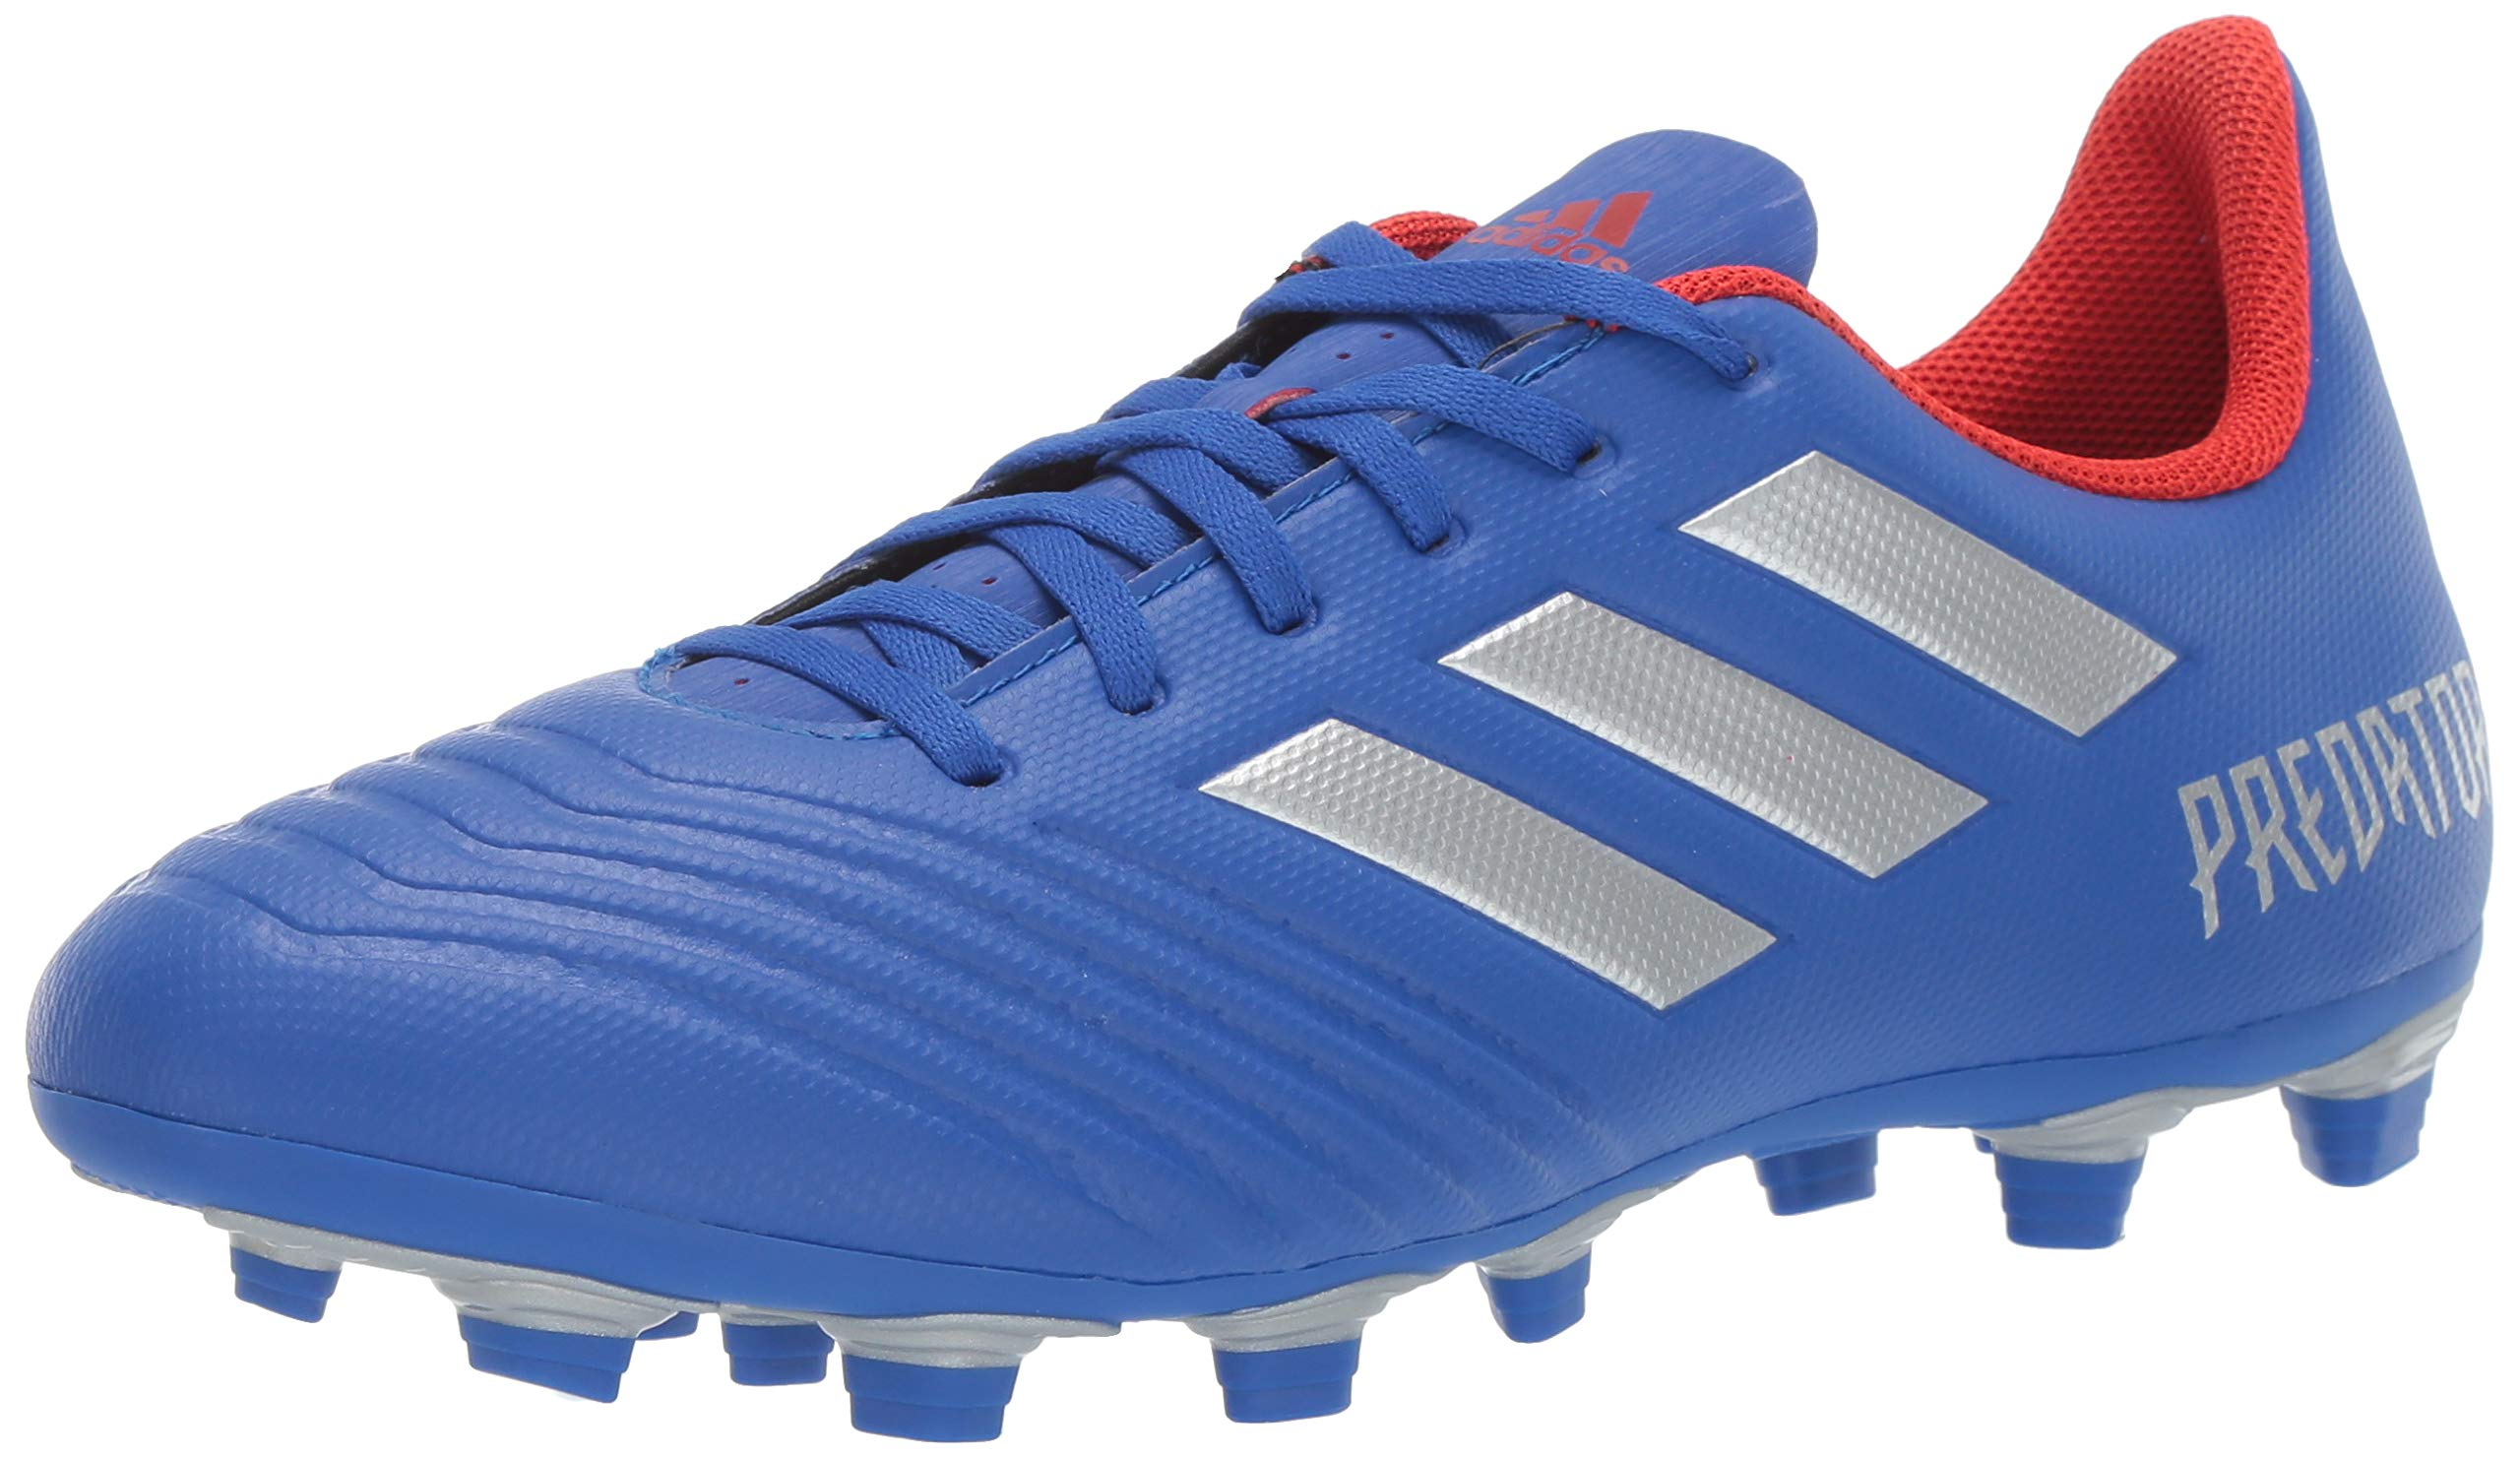 adidas Men's Predator 19.4 Firm Ground, Bold Blue/Silver Metallic/Active red, 11 M US by adidas